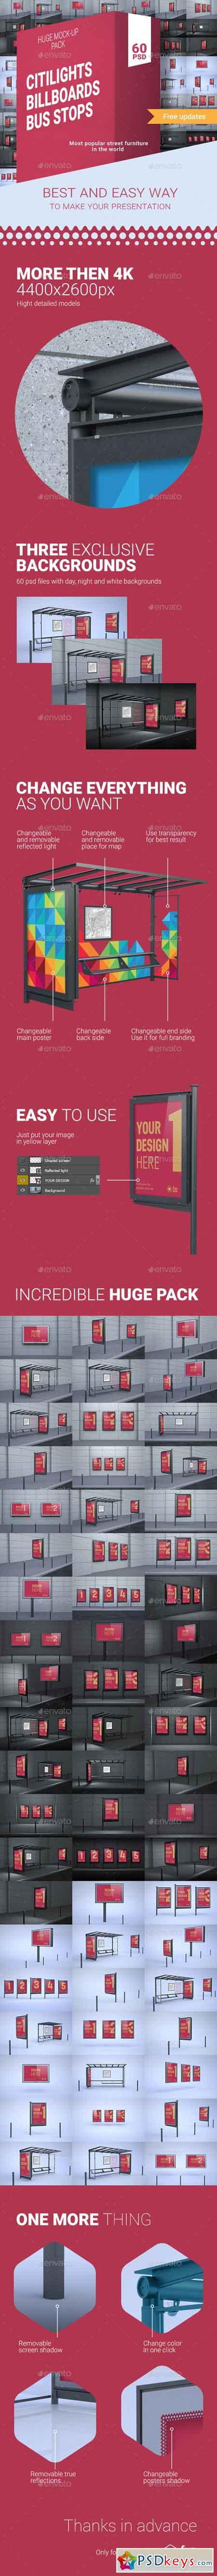 CBB Pack — 60 PSD Citylights, Billboards & Bus Stops Mock-ups! 16175216